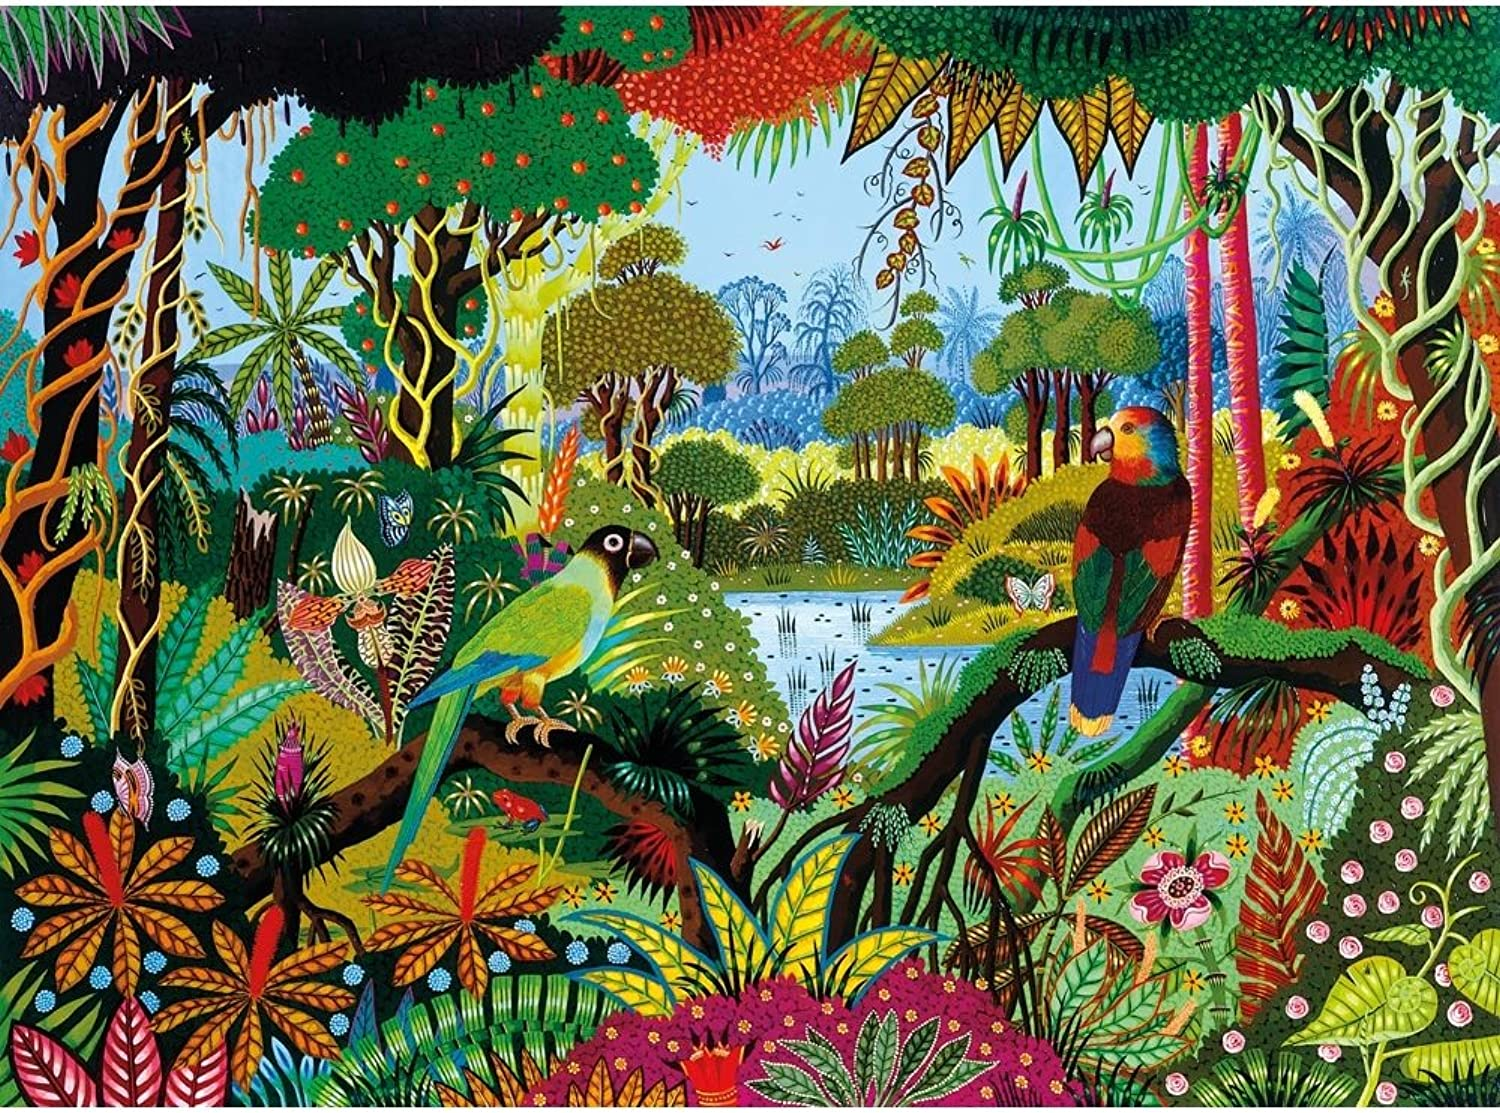 Wooden Jigsaw Puzzle - Alain Thomas  Jungle